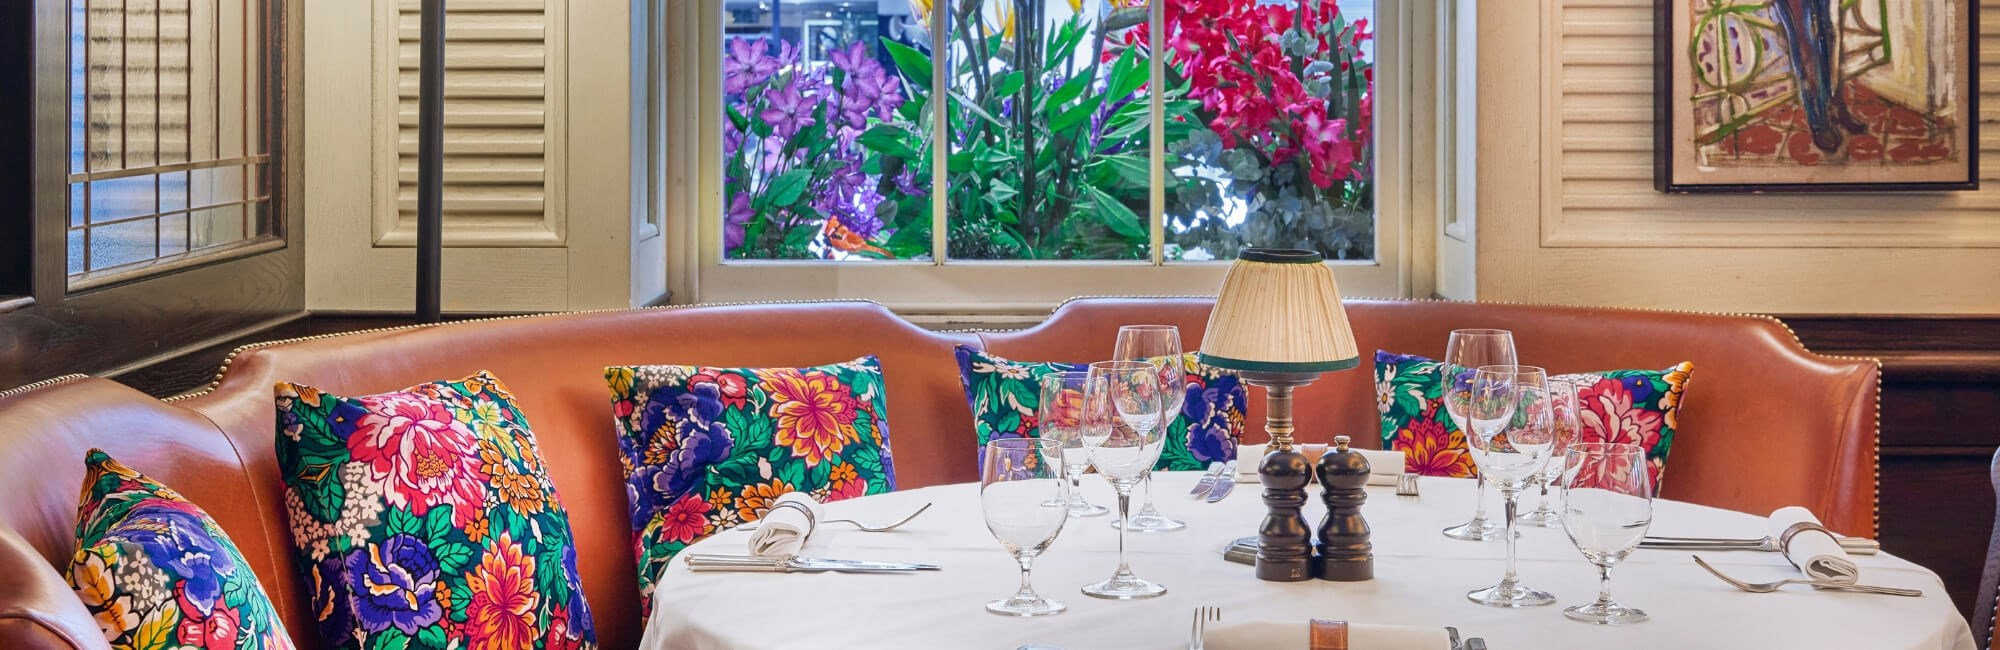 34 Mayfair is Grill Restaurant in Mayfair serving lunch, dinner and brunch